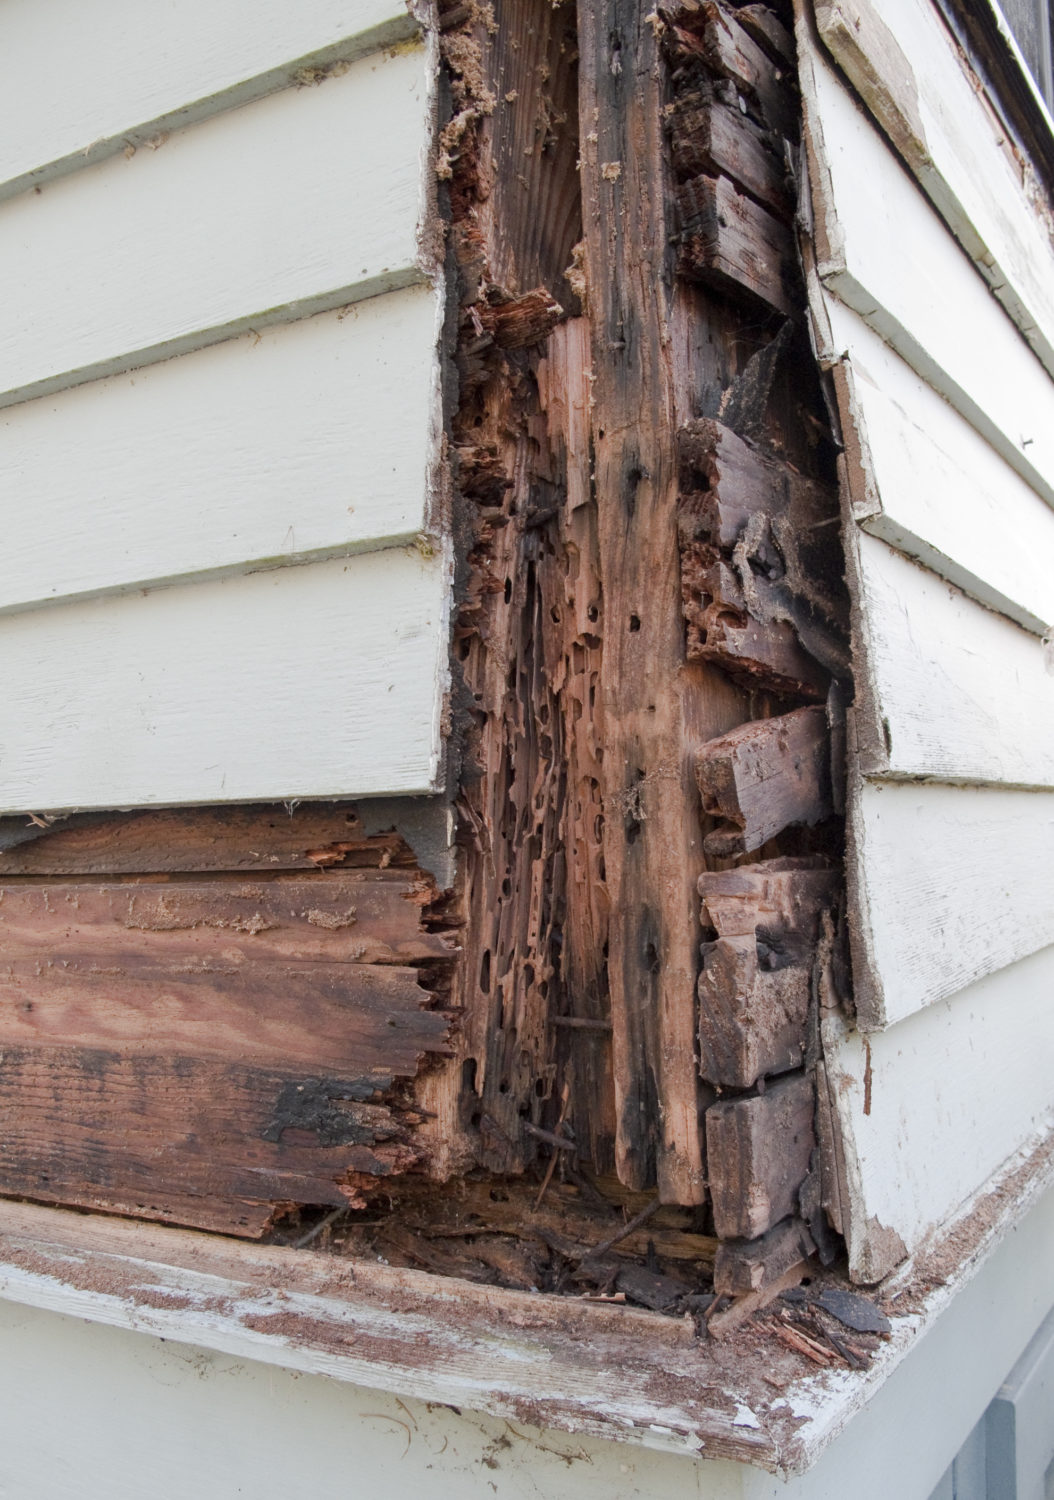 siding of a Houston home with termite damage